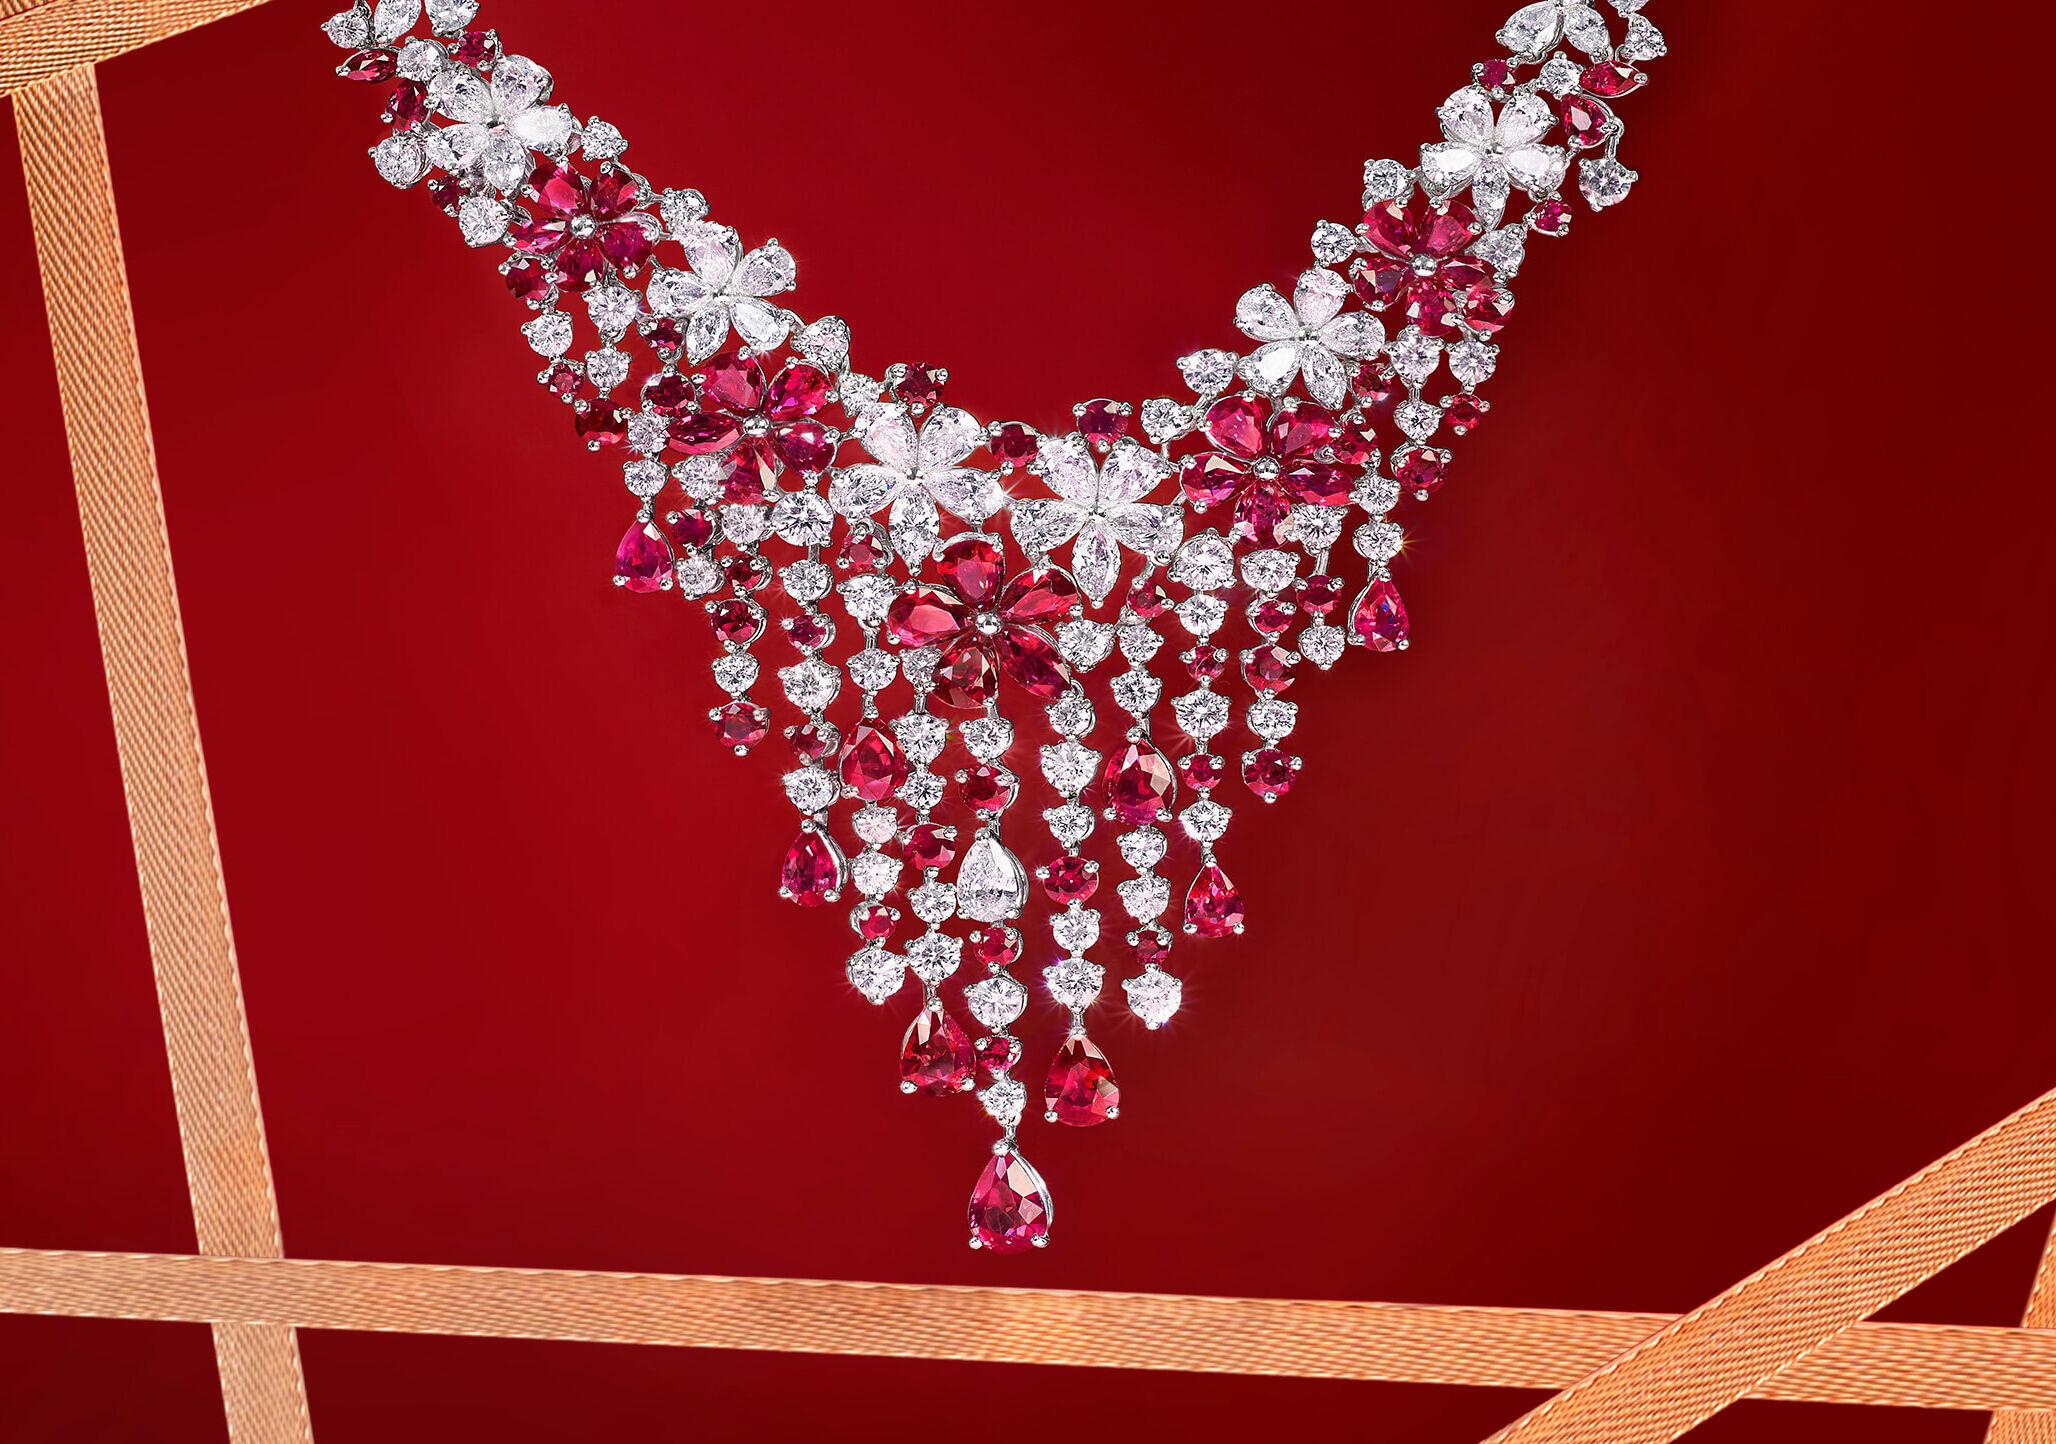 A Graff Carissa Collection Ruby and Diamond Necklace hanging in front of a red background with gold ribbons